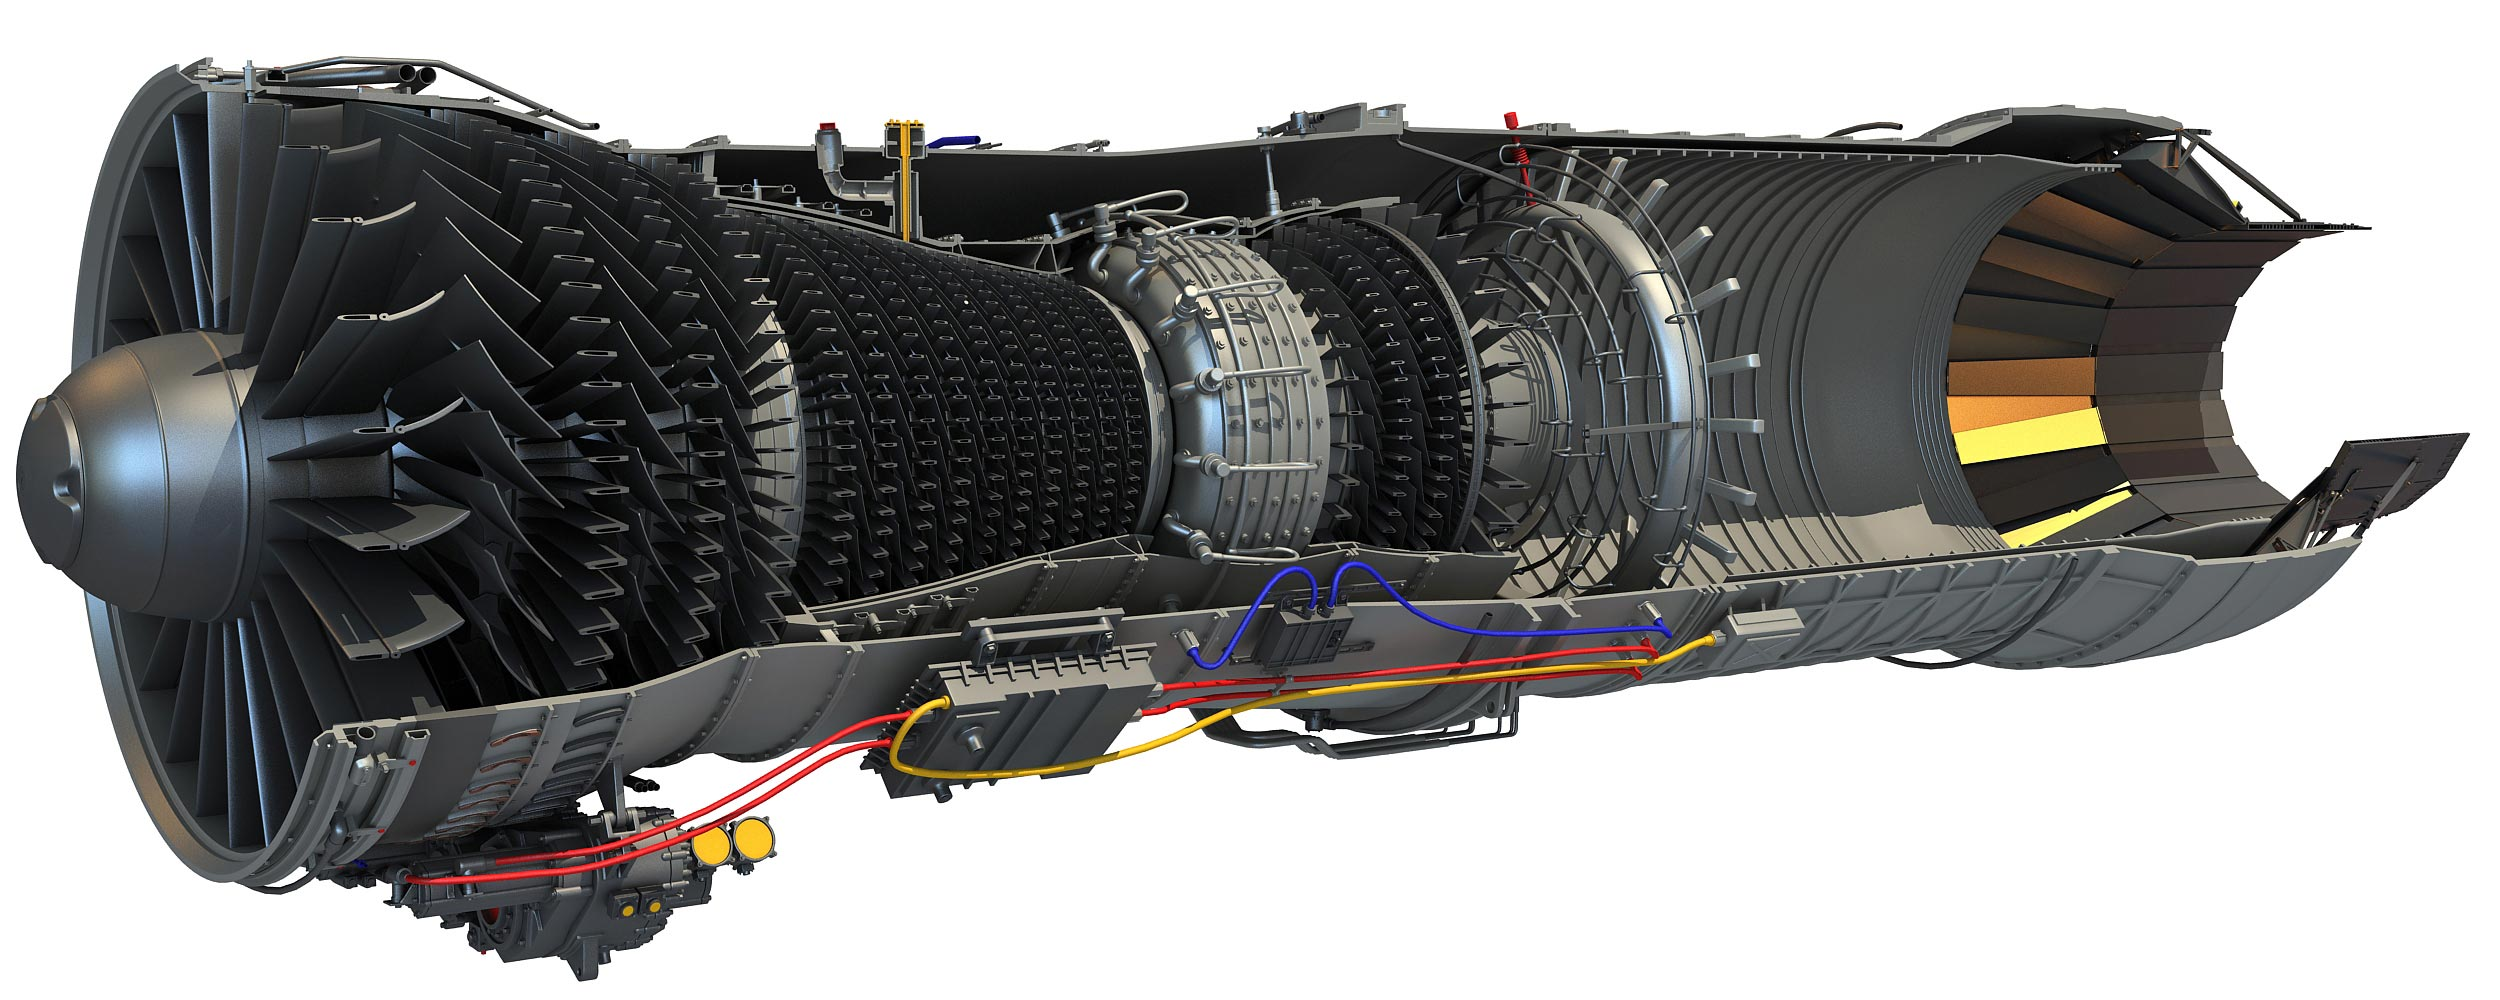 Pratt & Whitney F100 Turbofan Engine cutaway